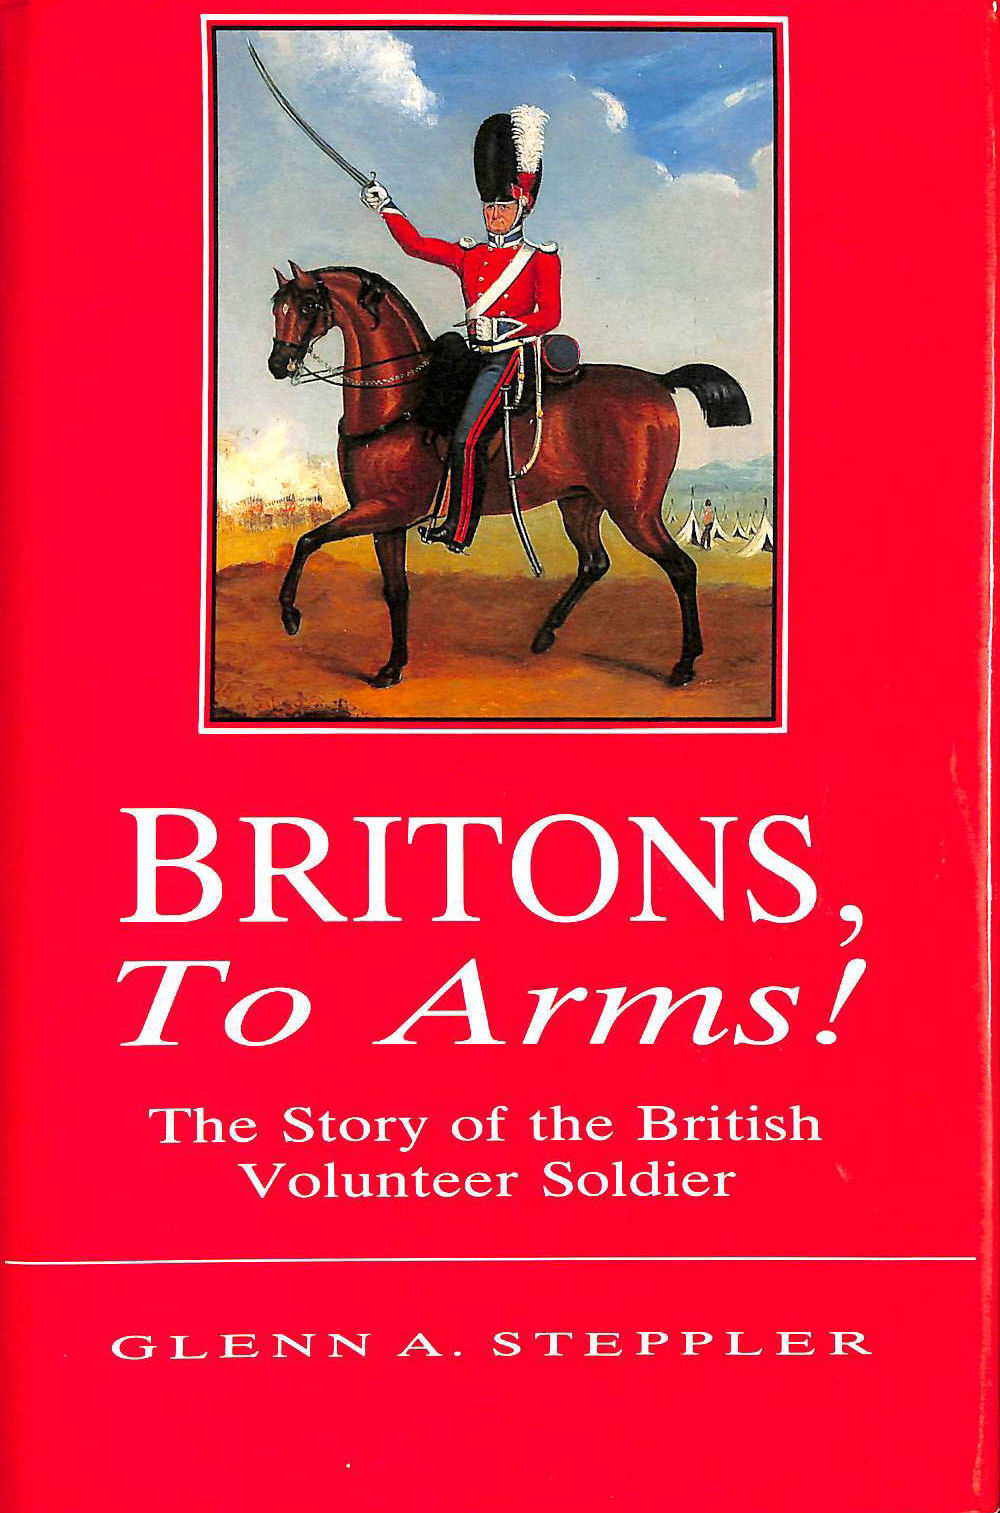 Image for Britons, to arms! : The story of the British volunteer soldier and the volunteer tradition in Leicestershire and Rutland